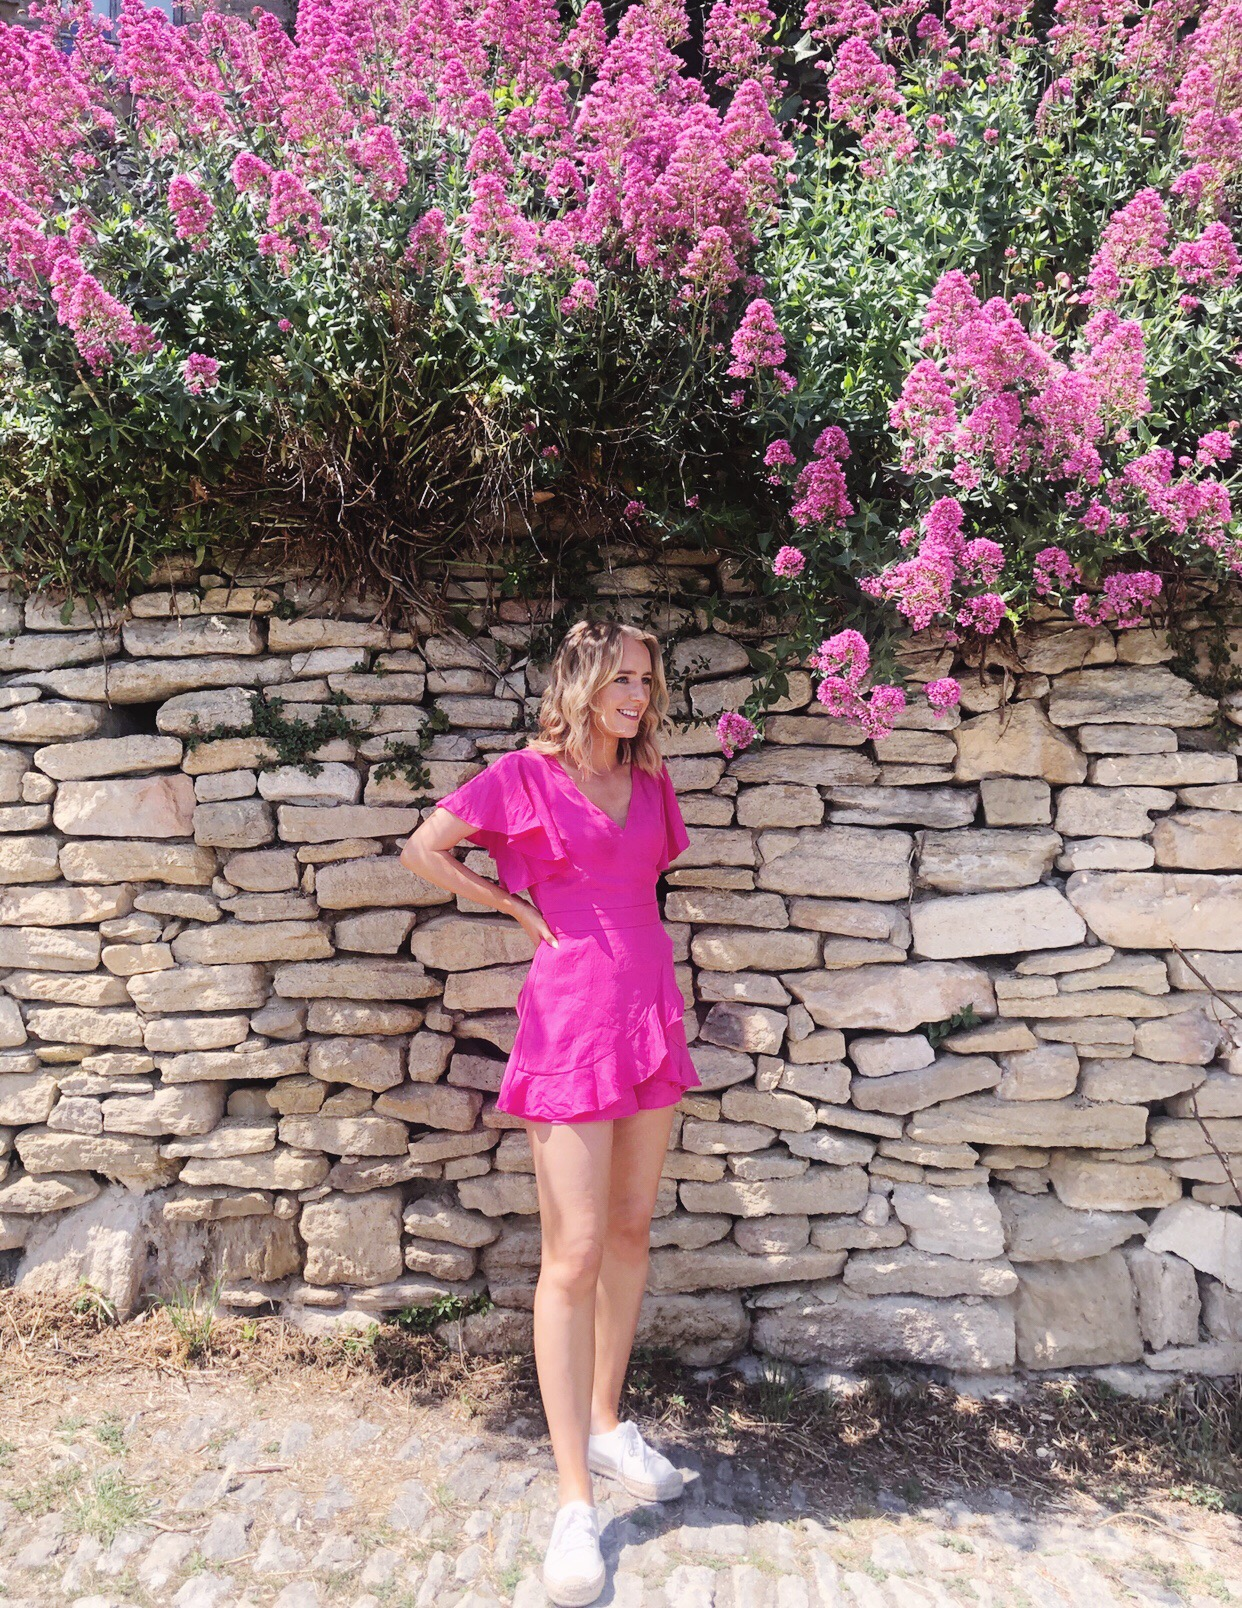 Friends In New York City :: Meet Emma - Associate Publicist by popular New York lifestyle blog, Live Laugh Linda: image of a woman wearing a pink ruffle dress and standing under some pink flowers.